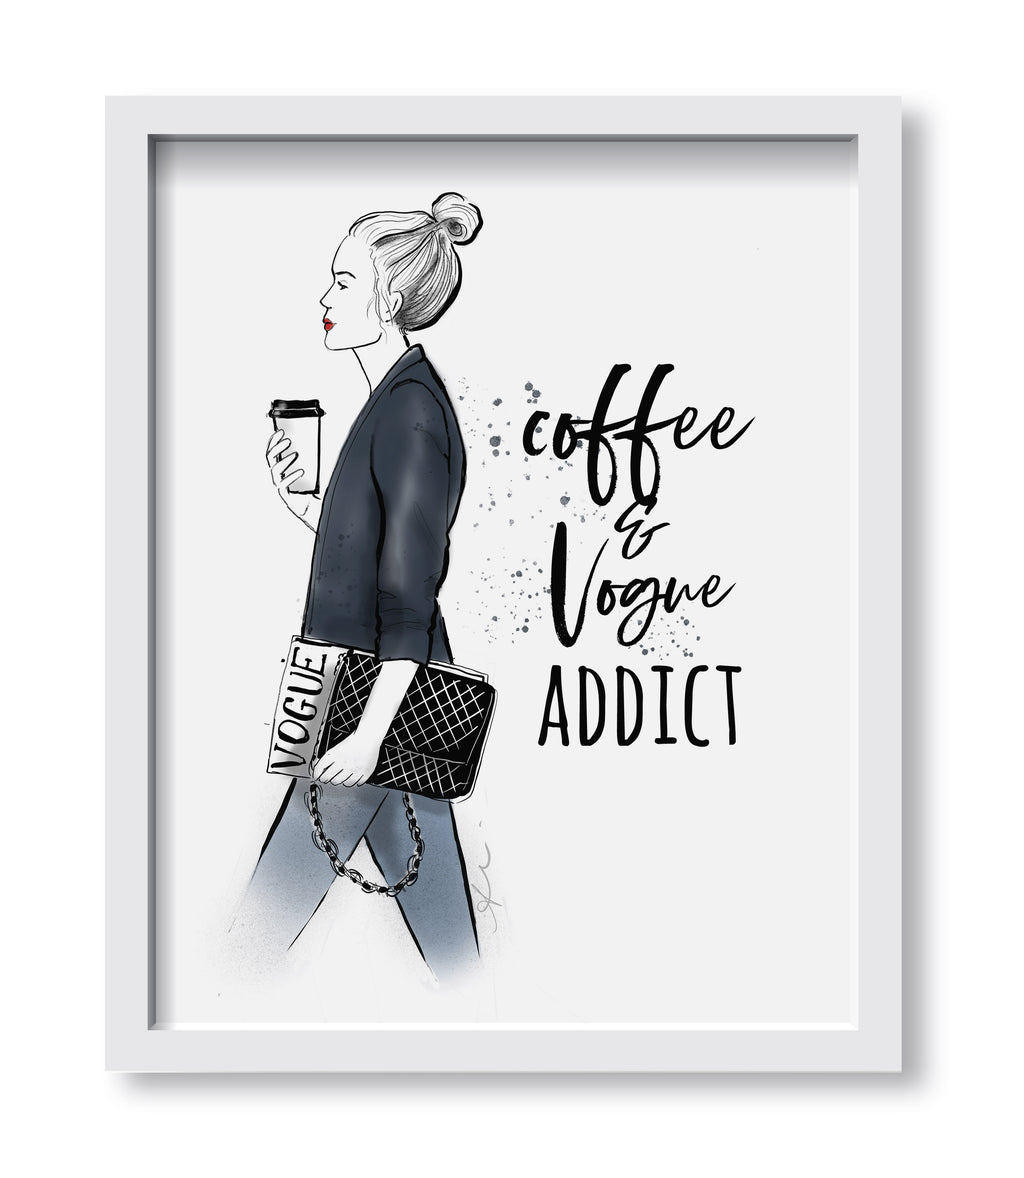 Coffee & Vogue